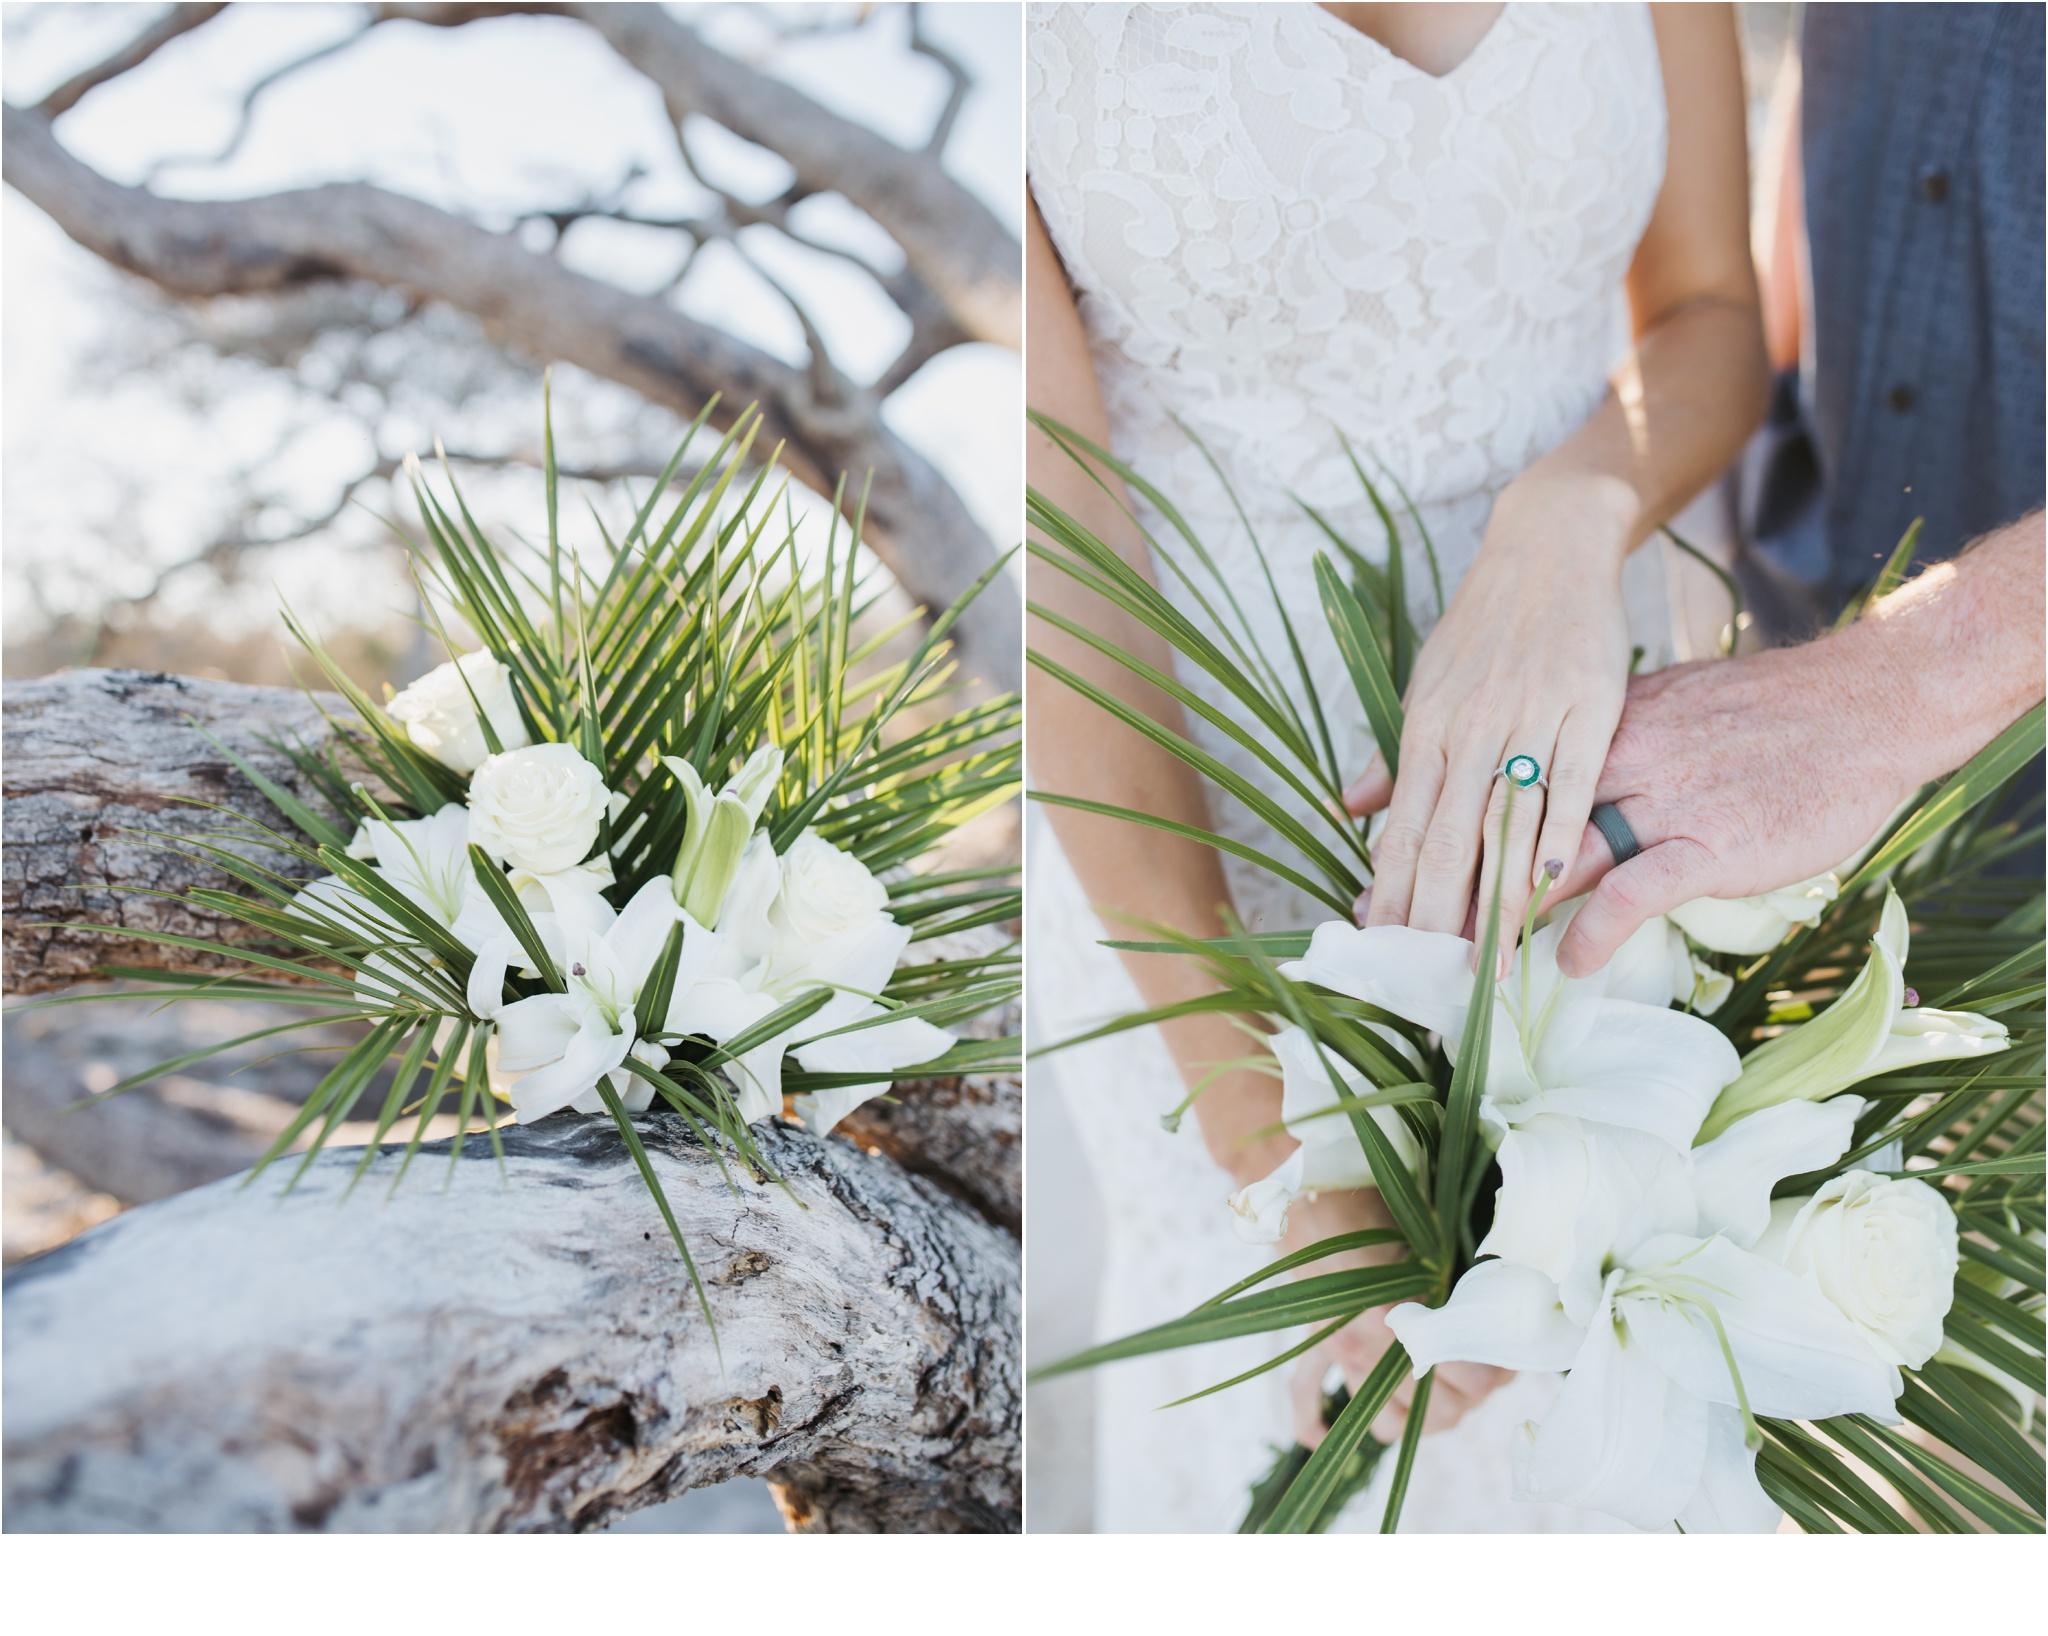 Rainey_Gregg_Photography_St._Simons_Island_Georgia_California_Wedding_Portrait_Photography_1583.jpg